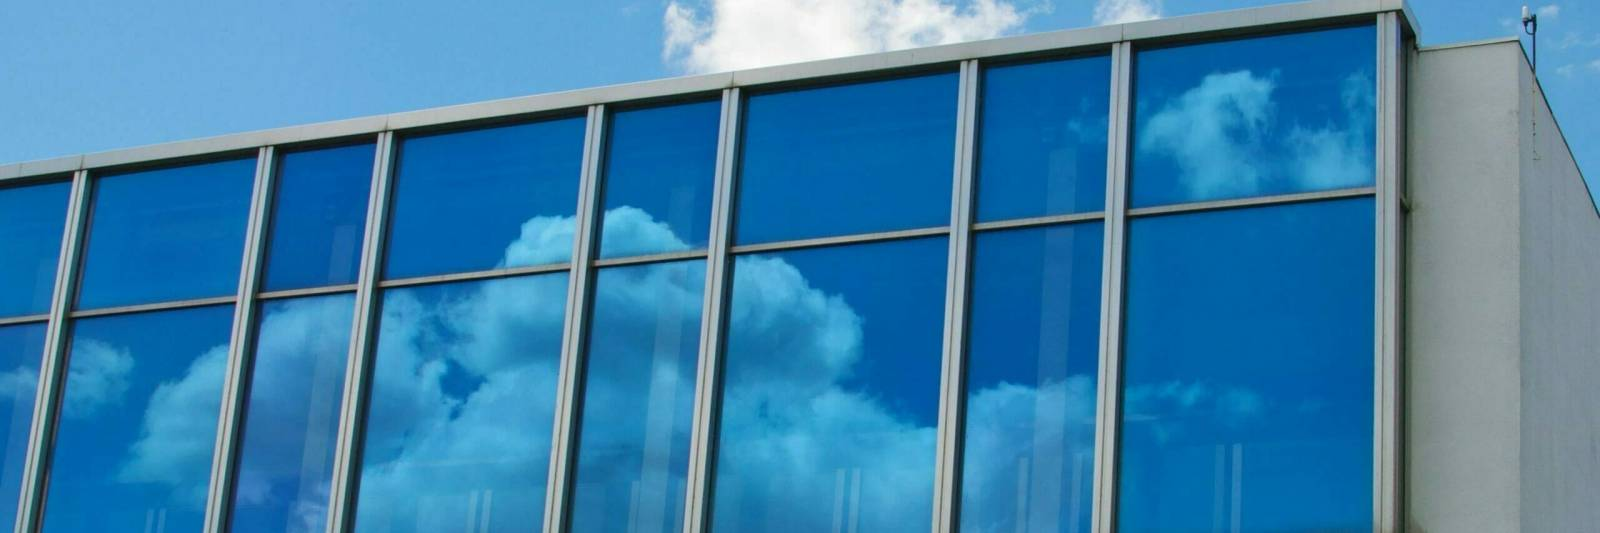 self service tool claims to execute cloud based data access in five